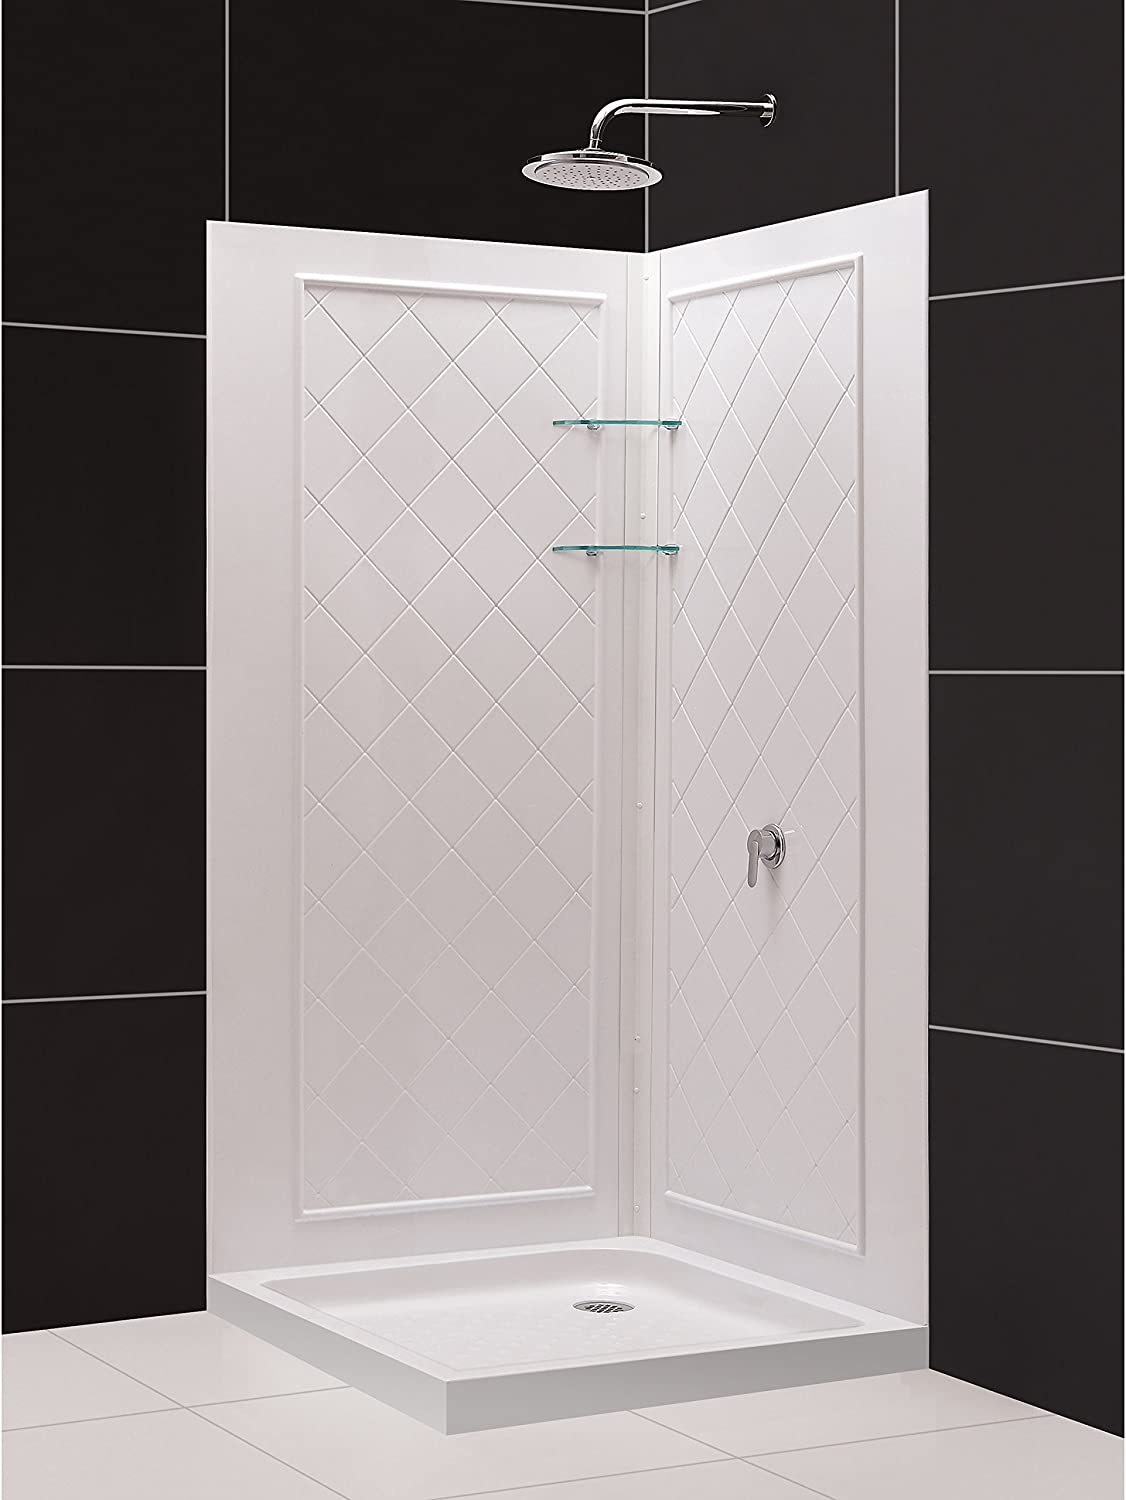 Dreamline Lagoon Wall Panel kit Shower Door   Item# 8042